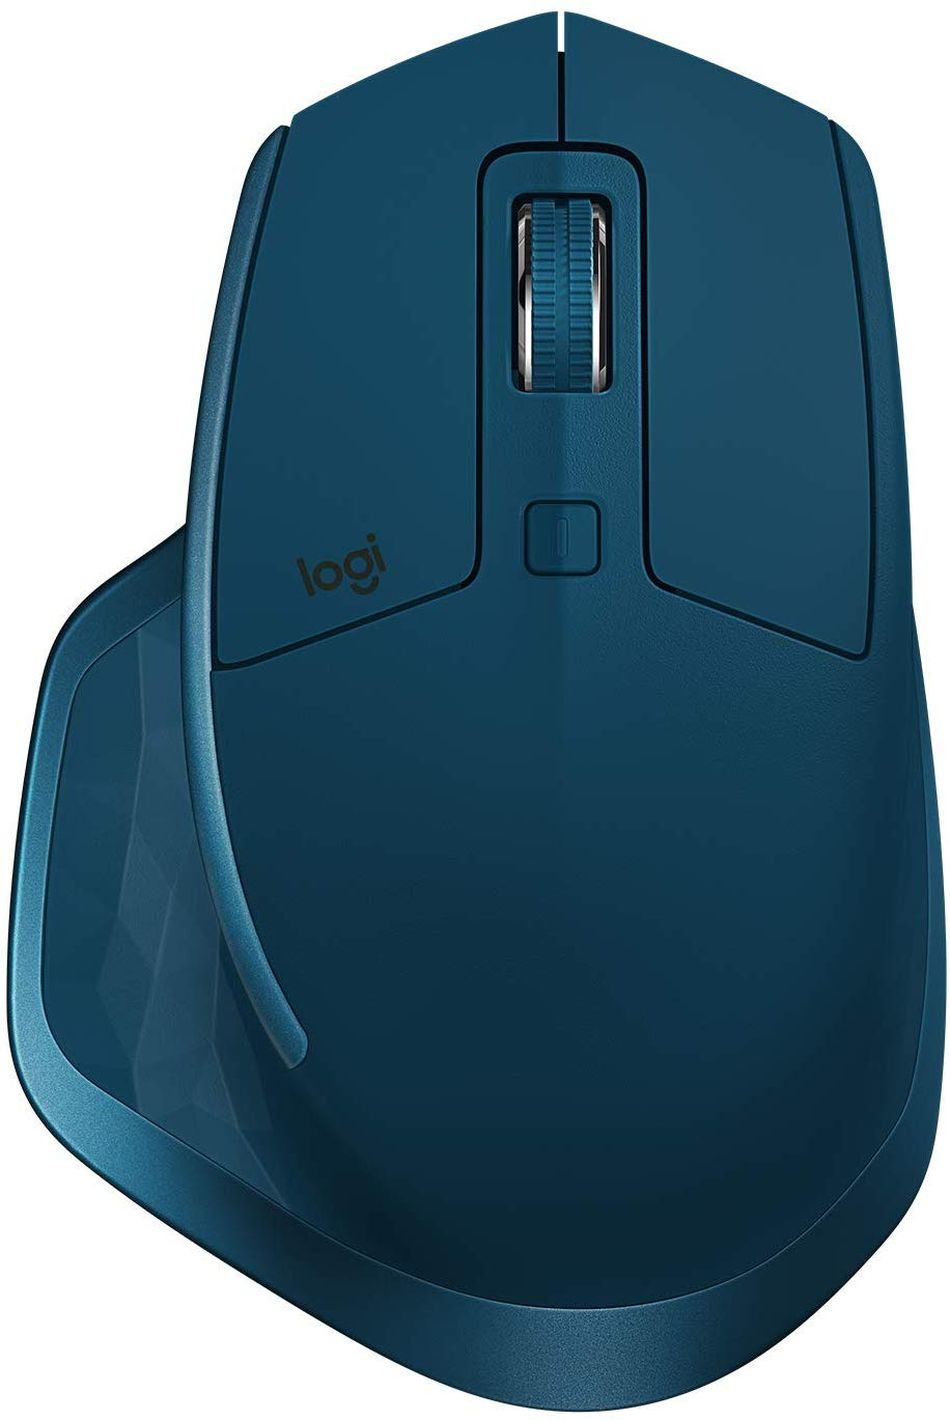 Work faster with the Logitech MX Master 2S mouse, but not too fast or you'll knock over your coffee cup.